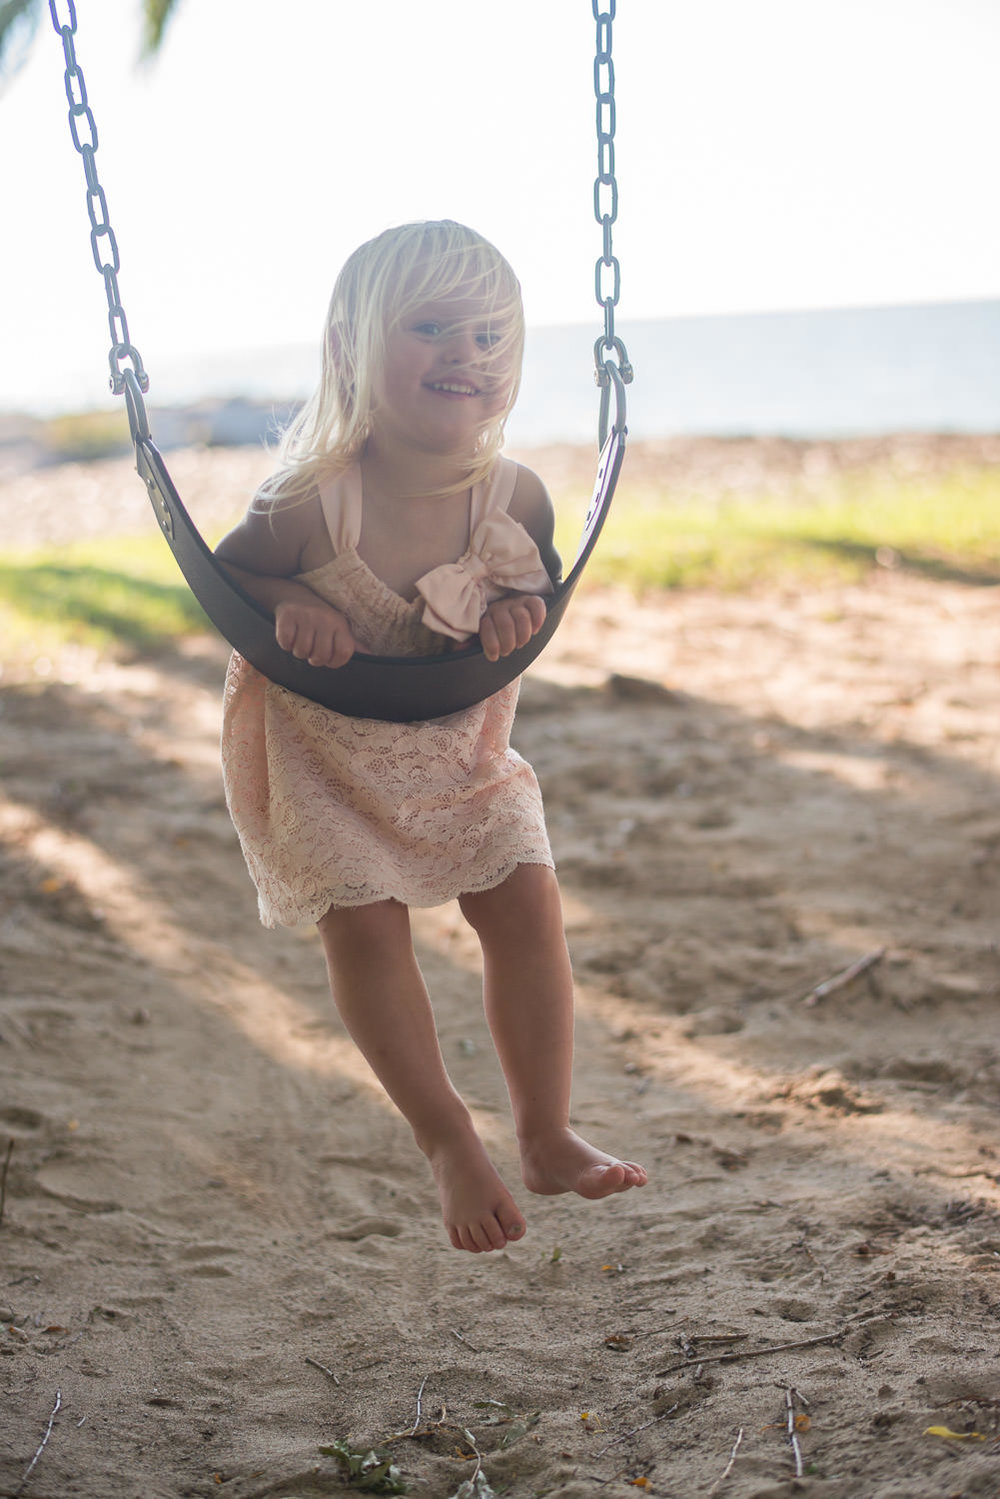 beach-girl-playing-on-swings.jpg